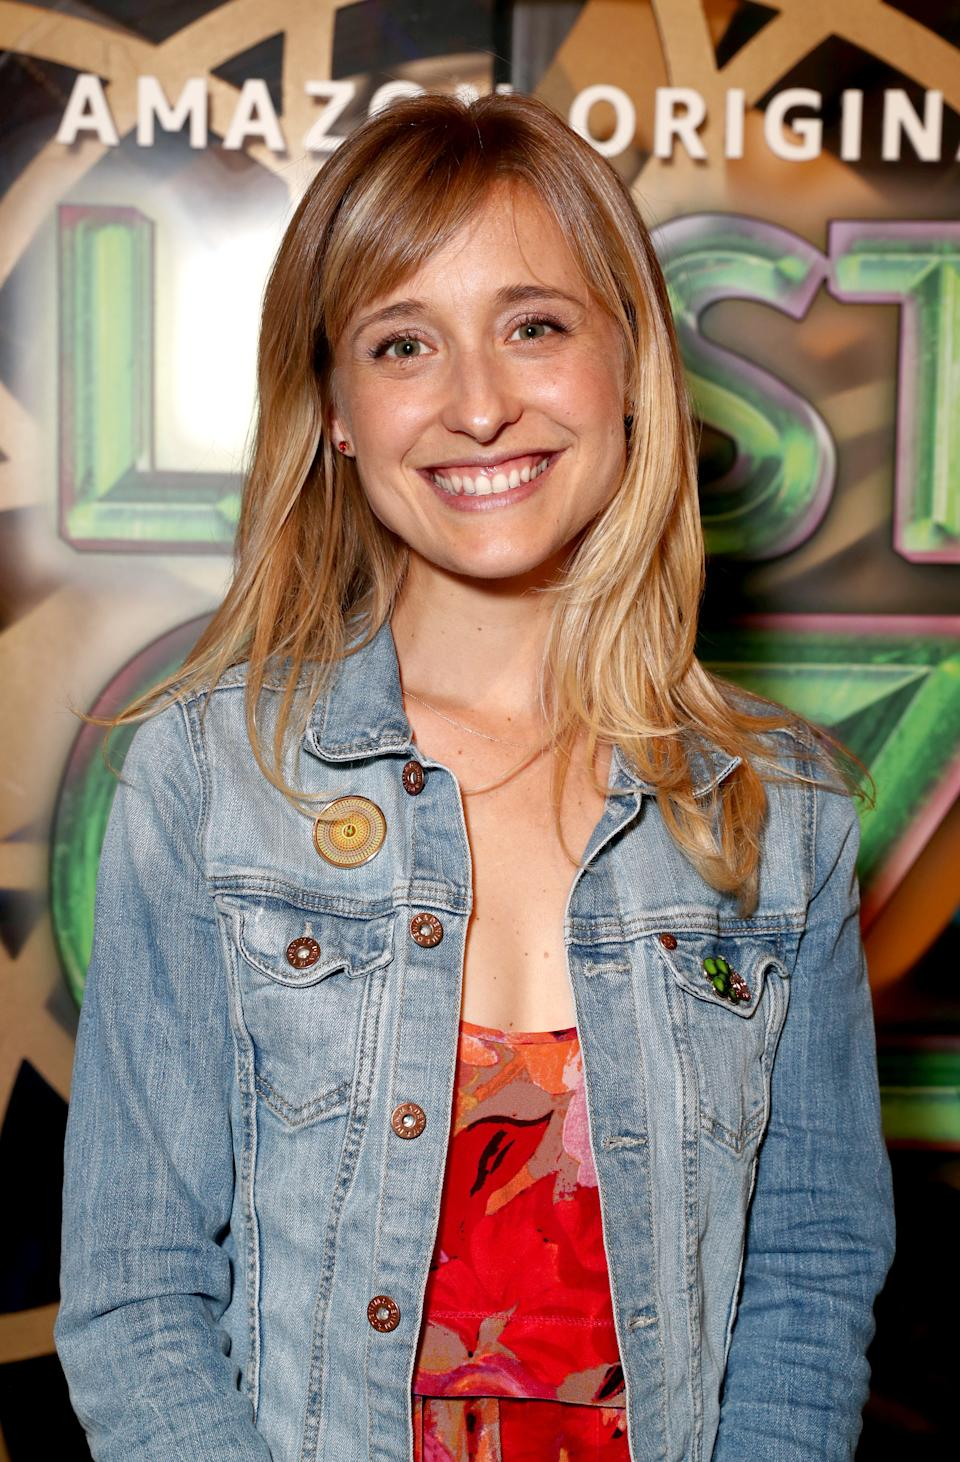 HOLLYWOOD, CA - AUGUST 01:  Allison Mack attends Amazon Studios' premiere for 'Lost In Oz' at NeueHouse Los Angeles on August 1, 2017 in Hollywood, California.  (Photo by Todd Williamson/Getty Images for Amazon Studios)